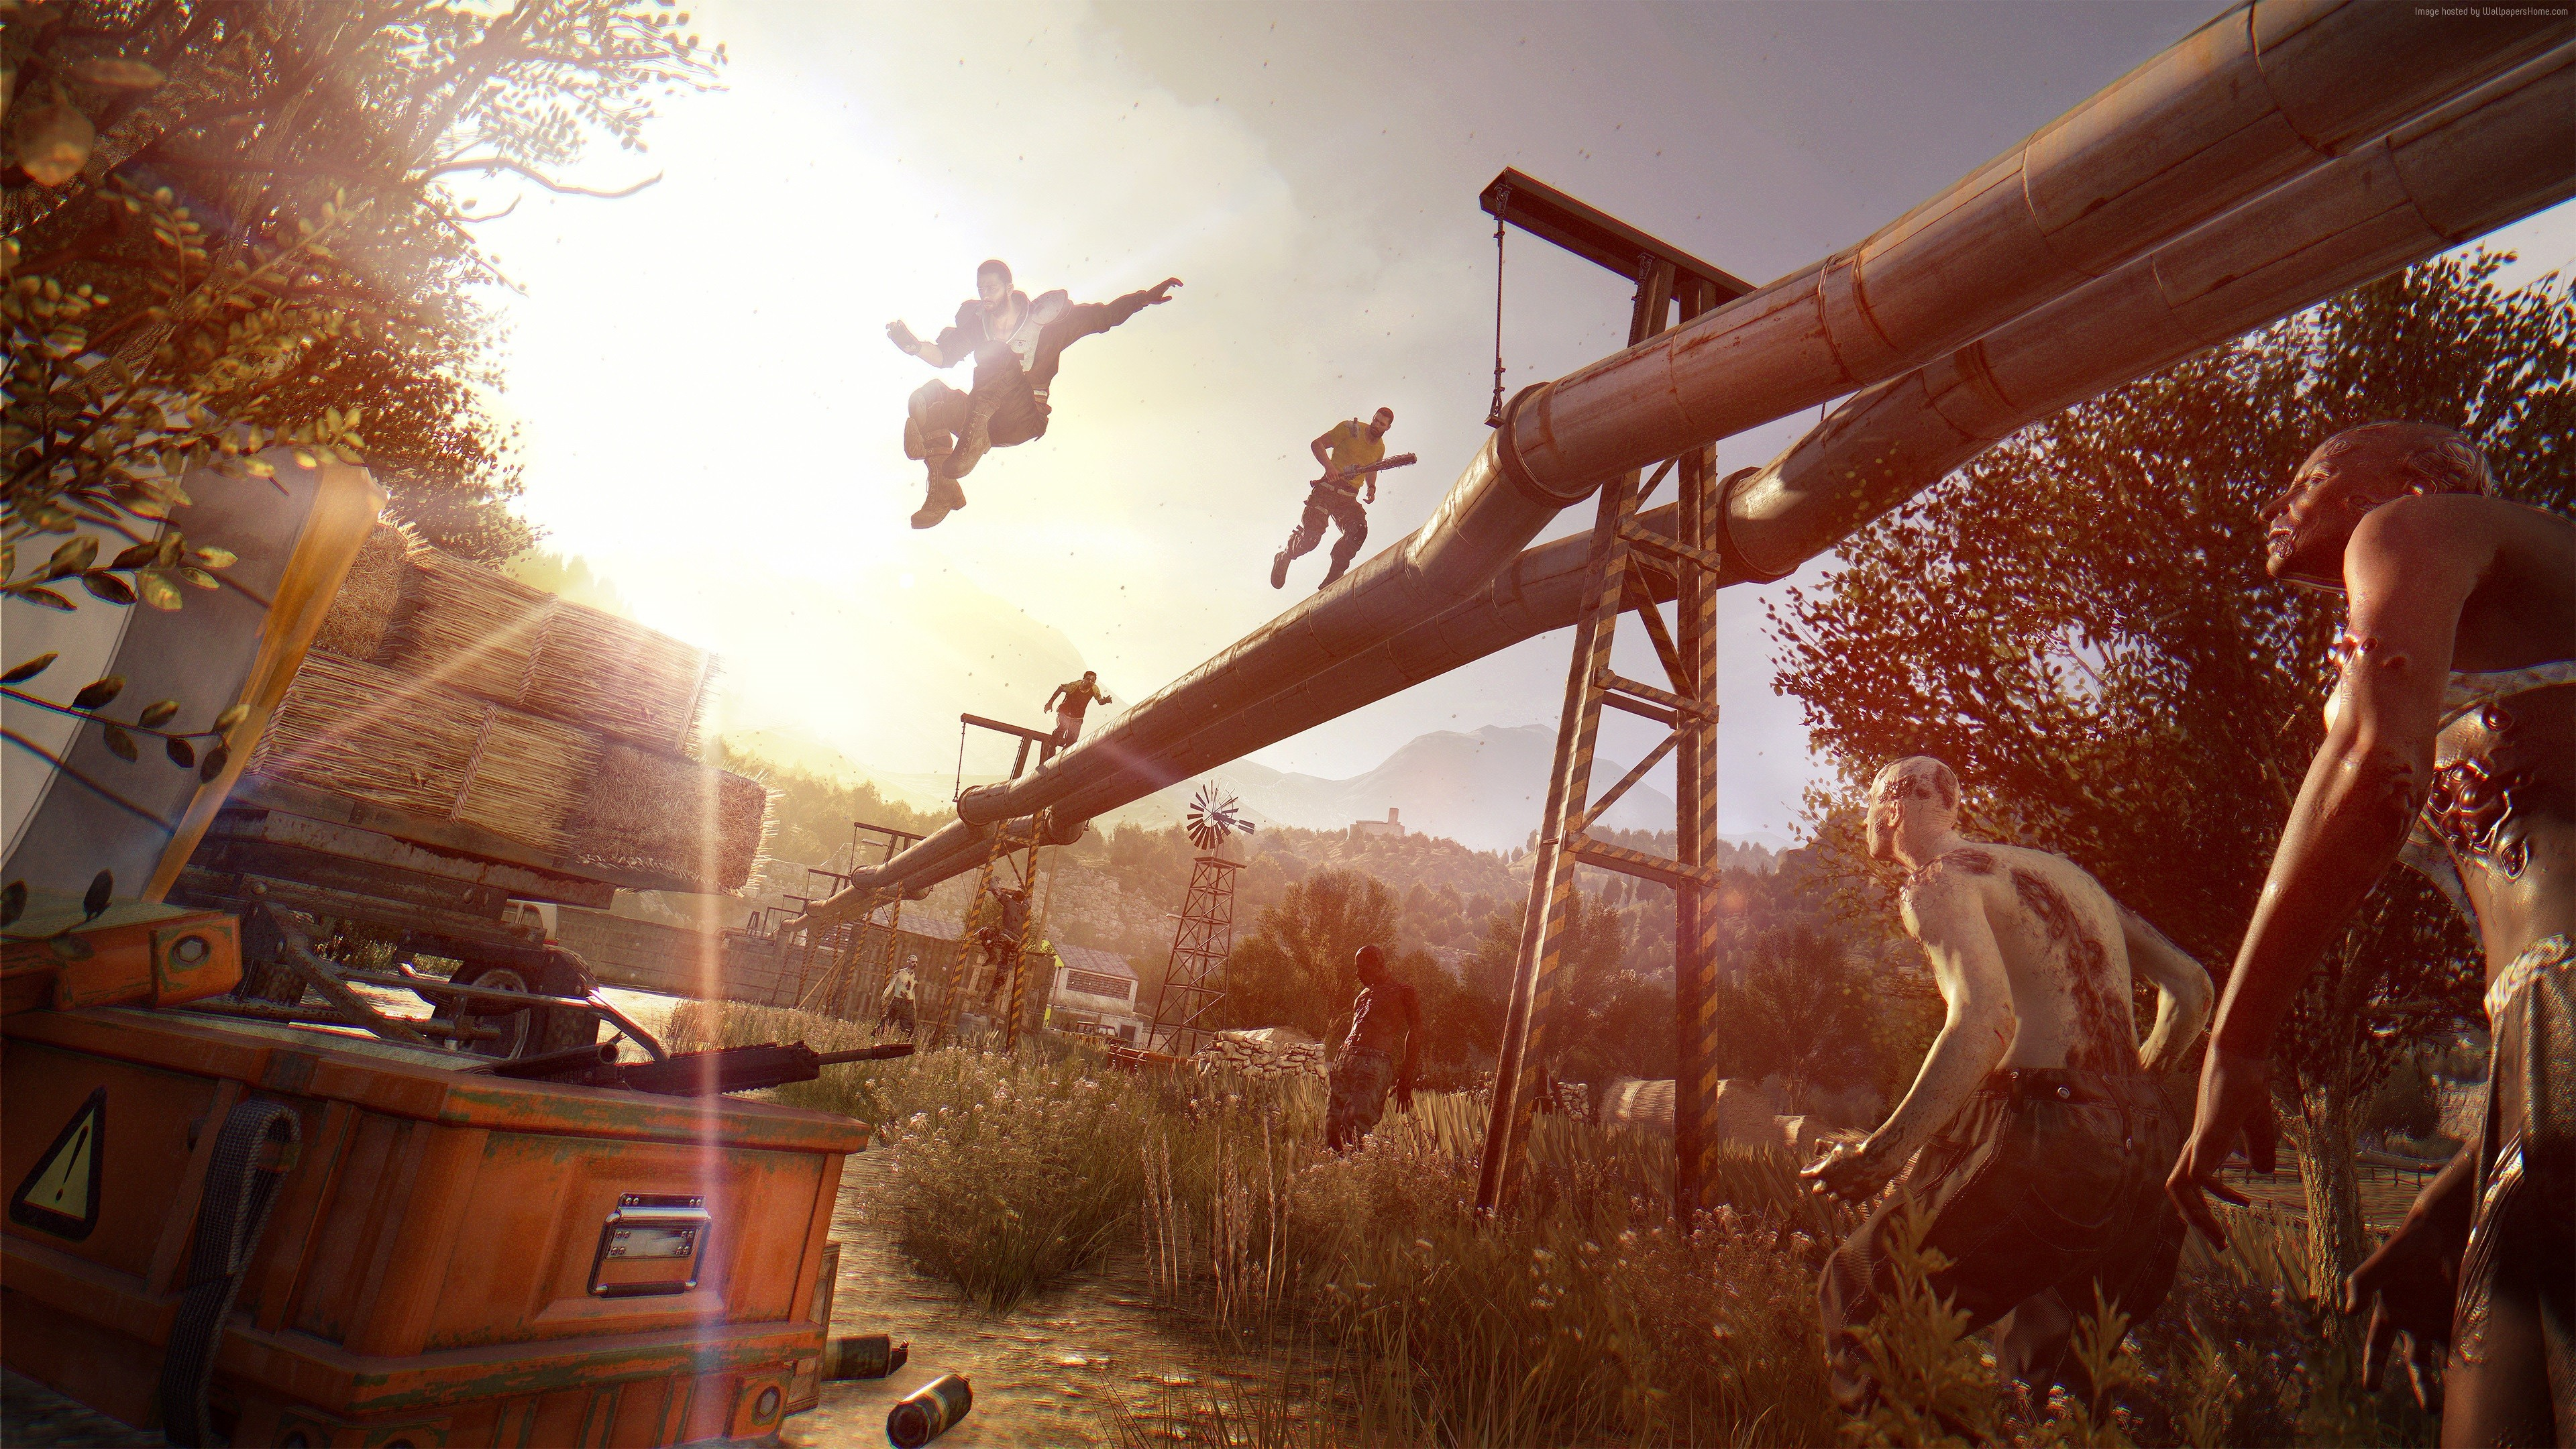 Dying Light Wallpapers 83 images